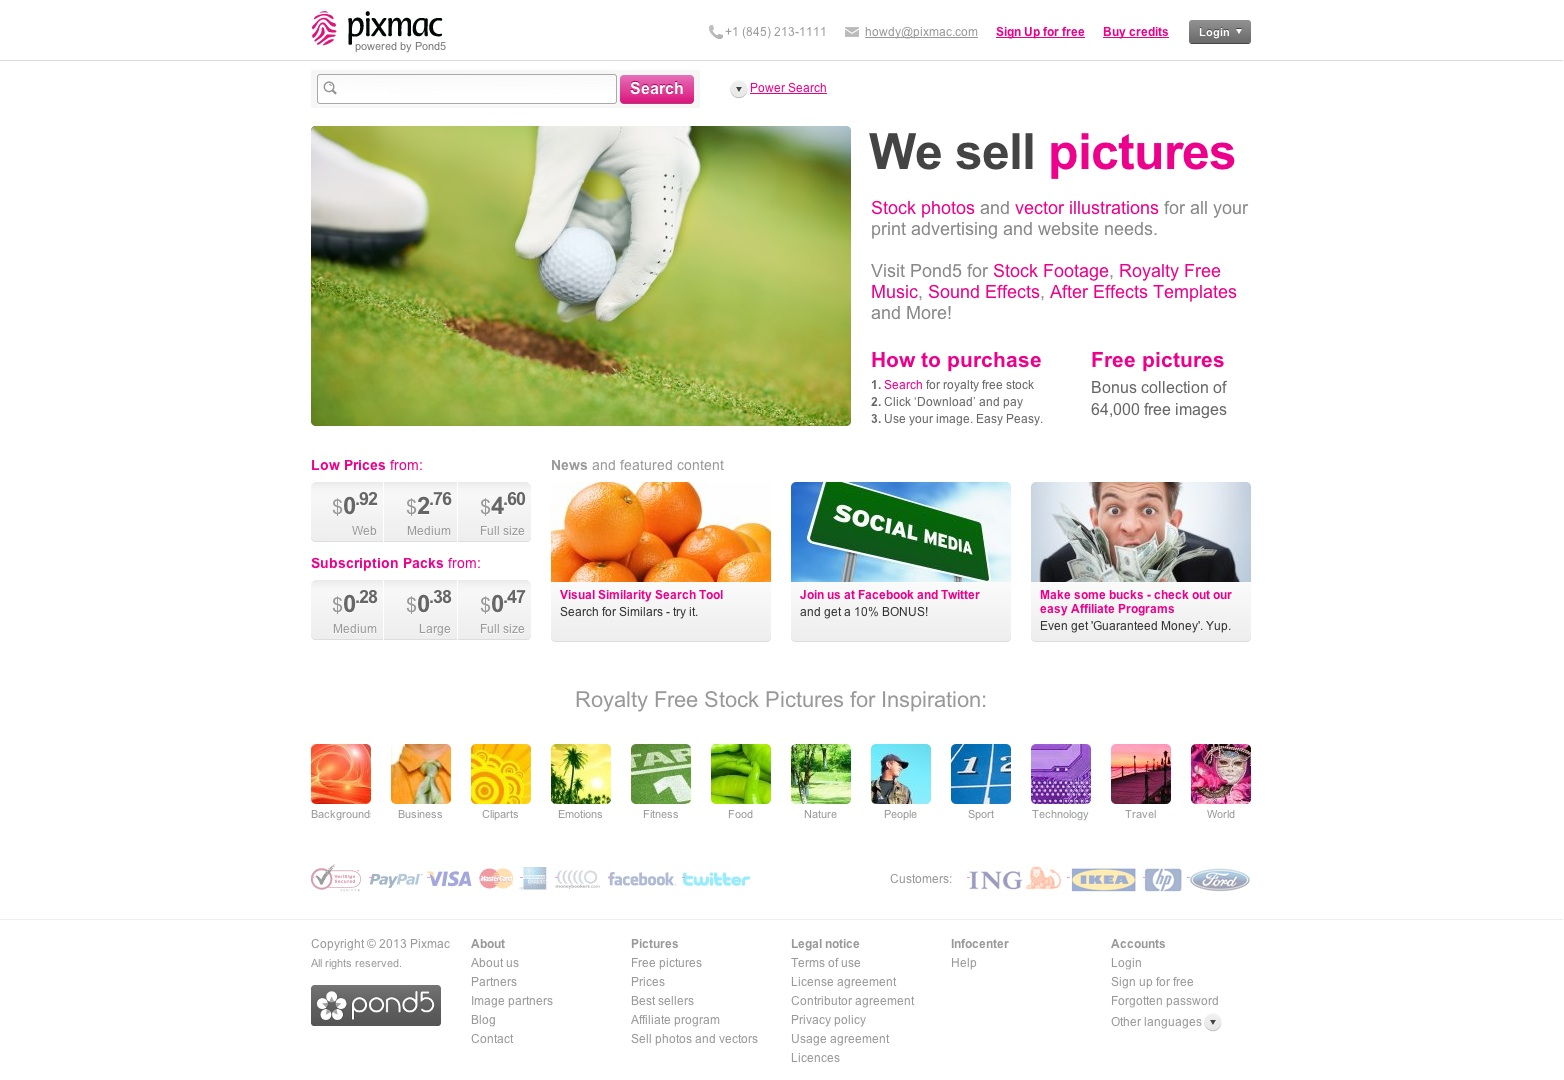 Buy stock photos, vectors & royalty free pictures | Pixmac